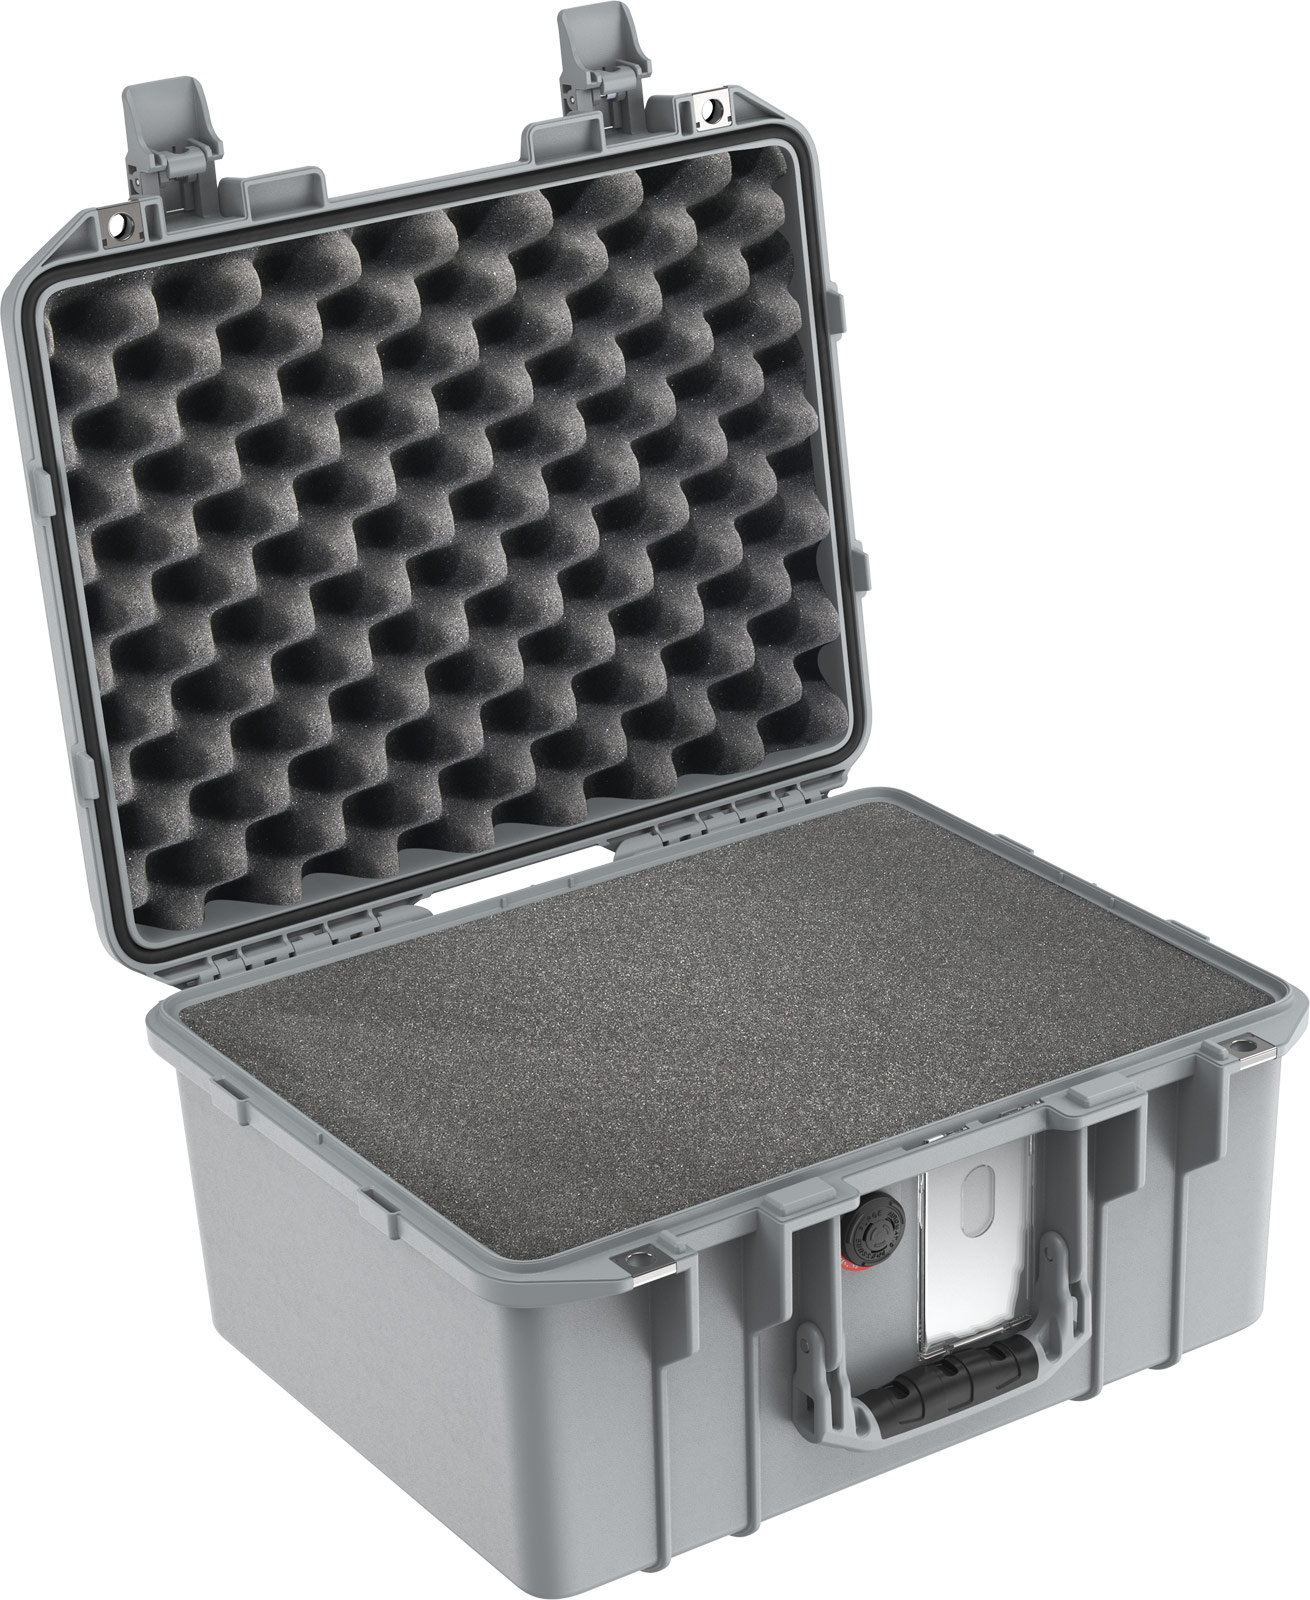 buy pelican air 1507 shop silver carry on case